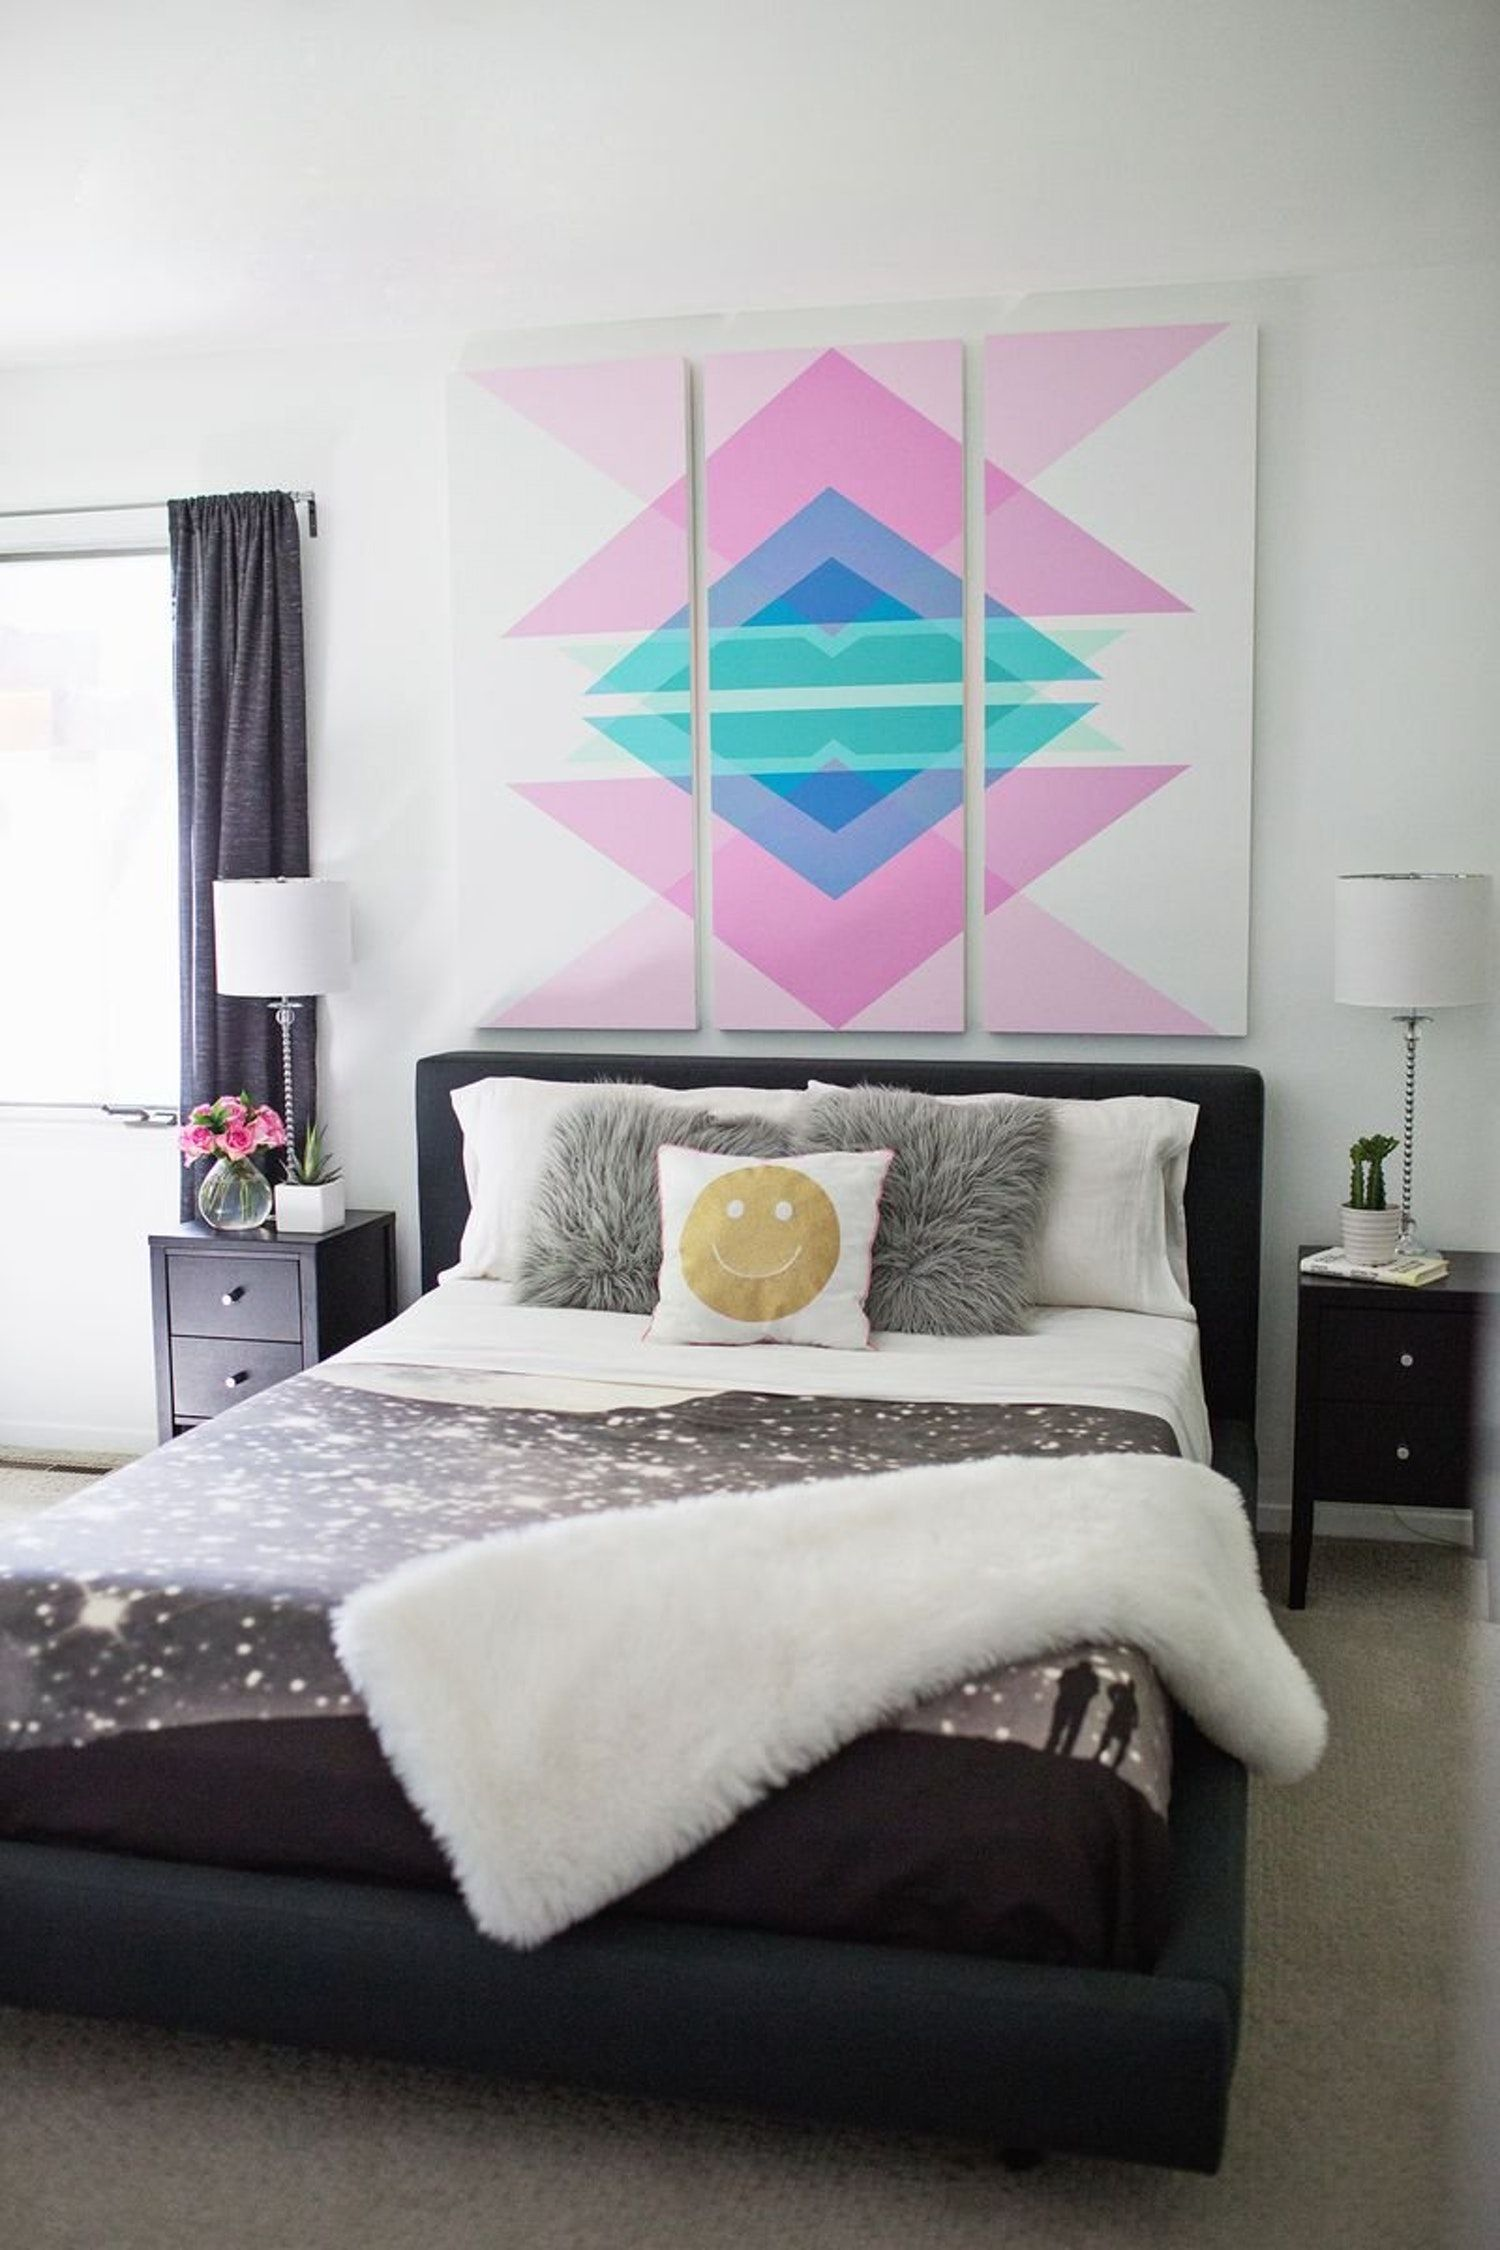 Creating a Home: 15 Ideas for Making & Displaying Art ...